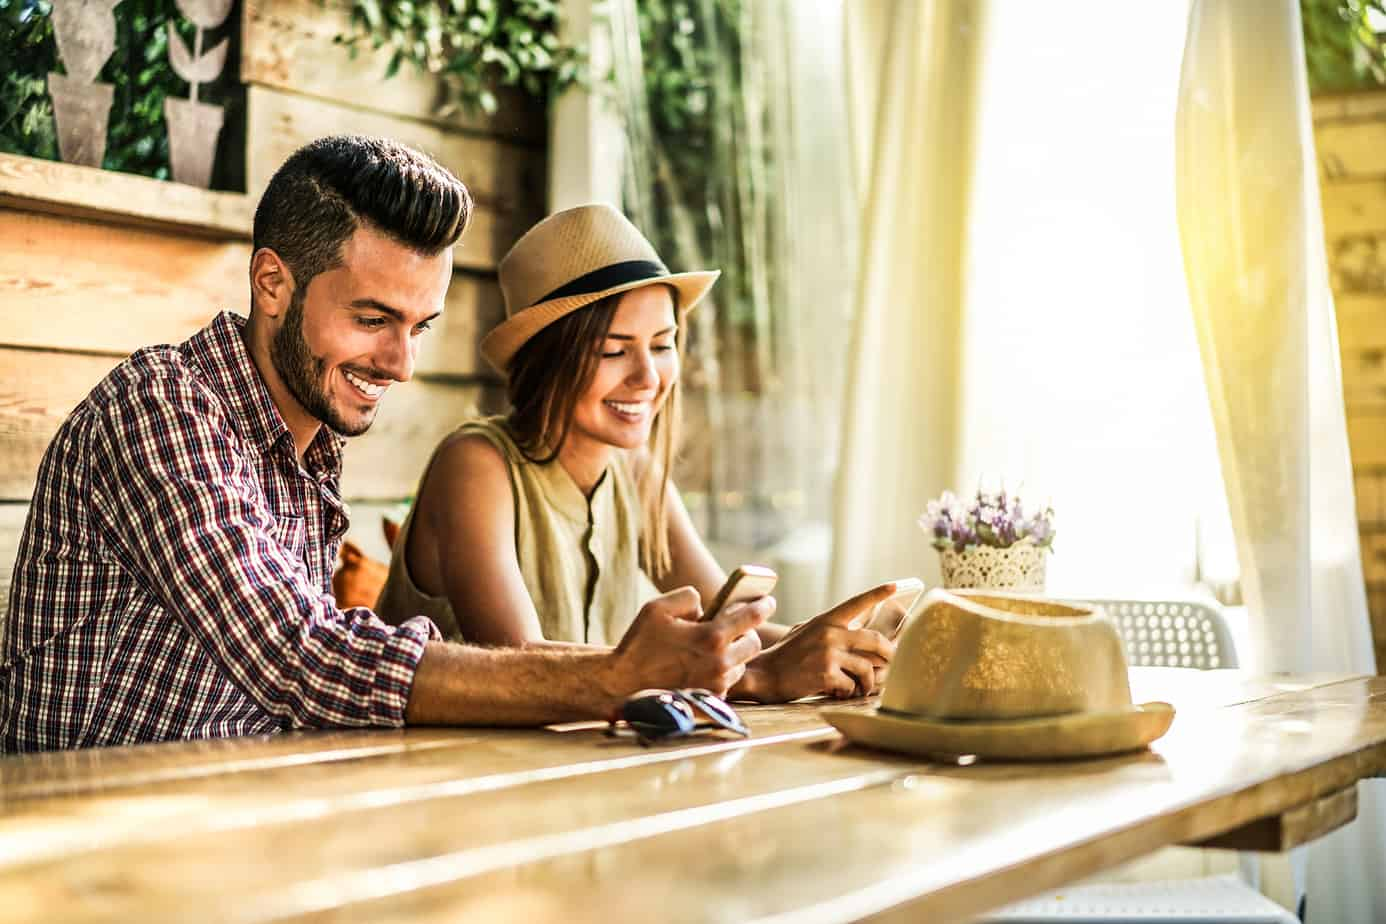 photo for budgeting as a couple - couple at table smiling at smartphones